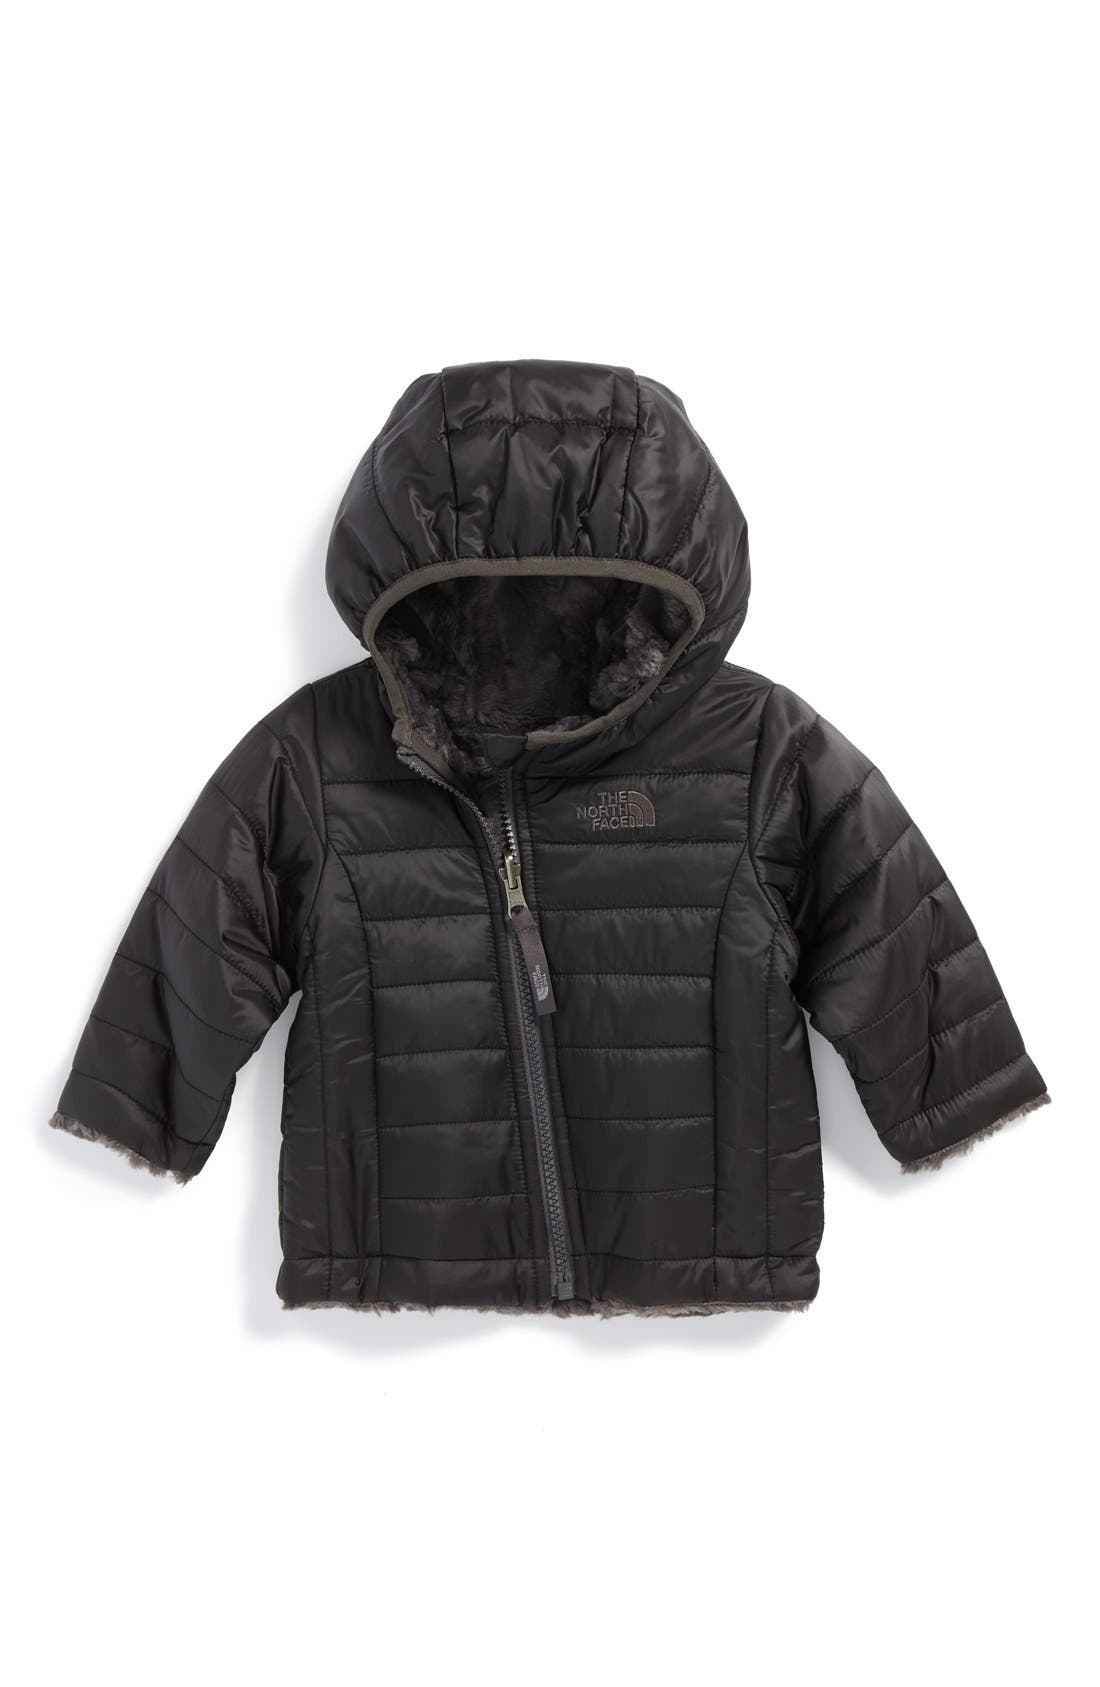 Main Image - The North Face 'Mossbud Swirl' Reversible Jacket (Baby)